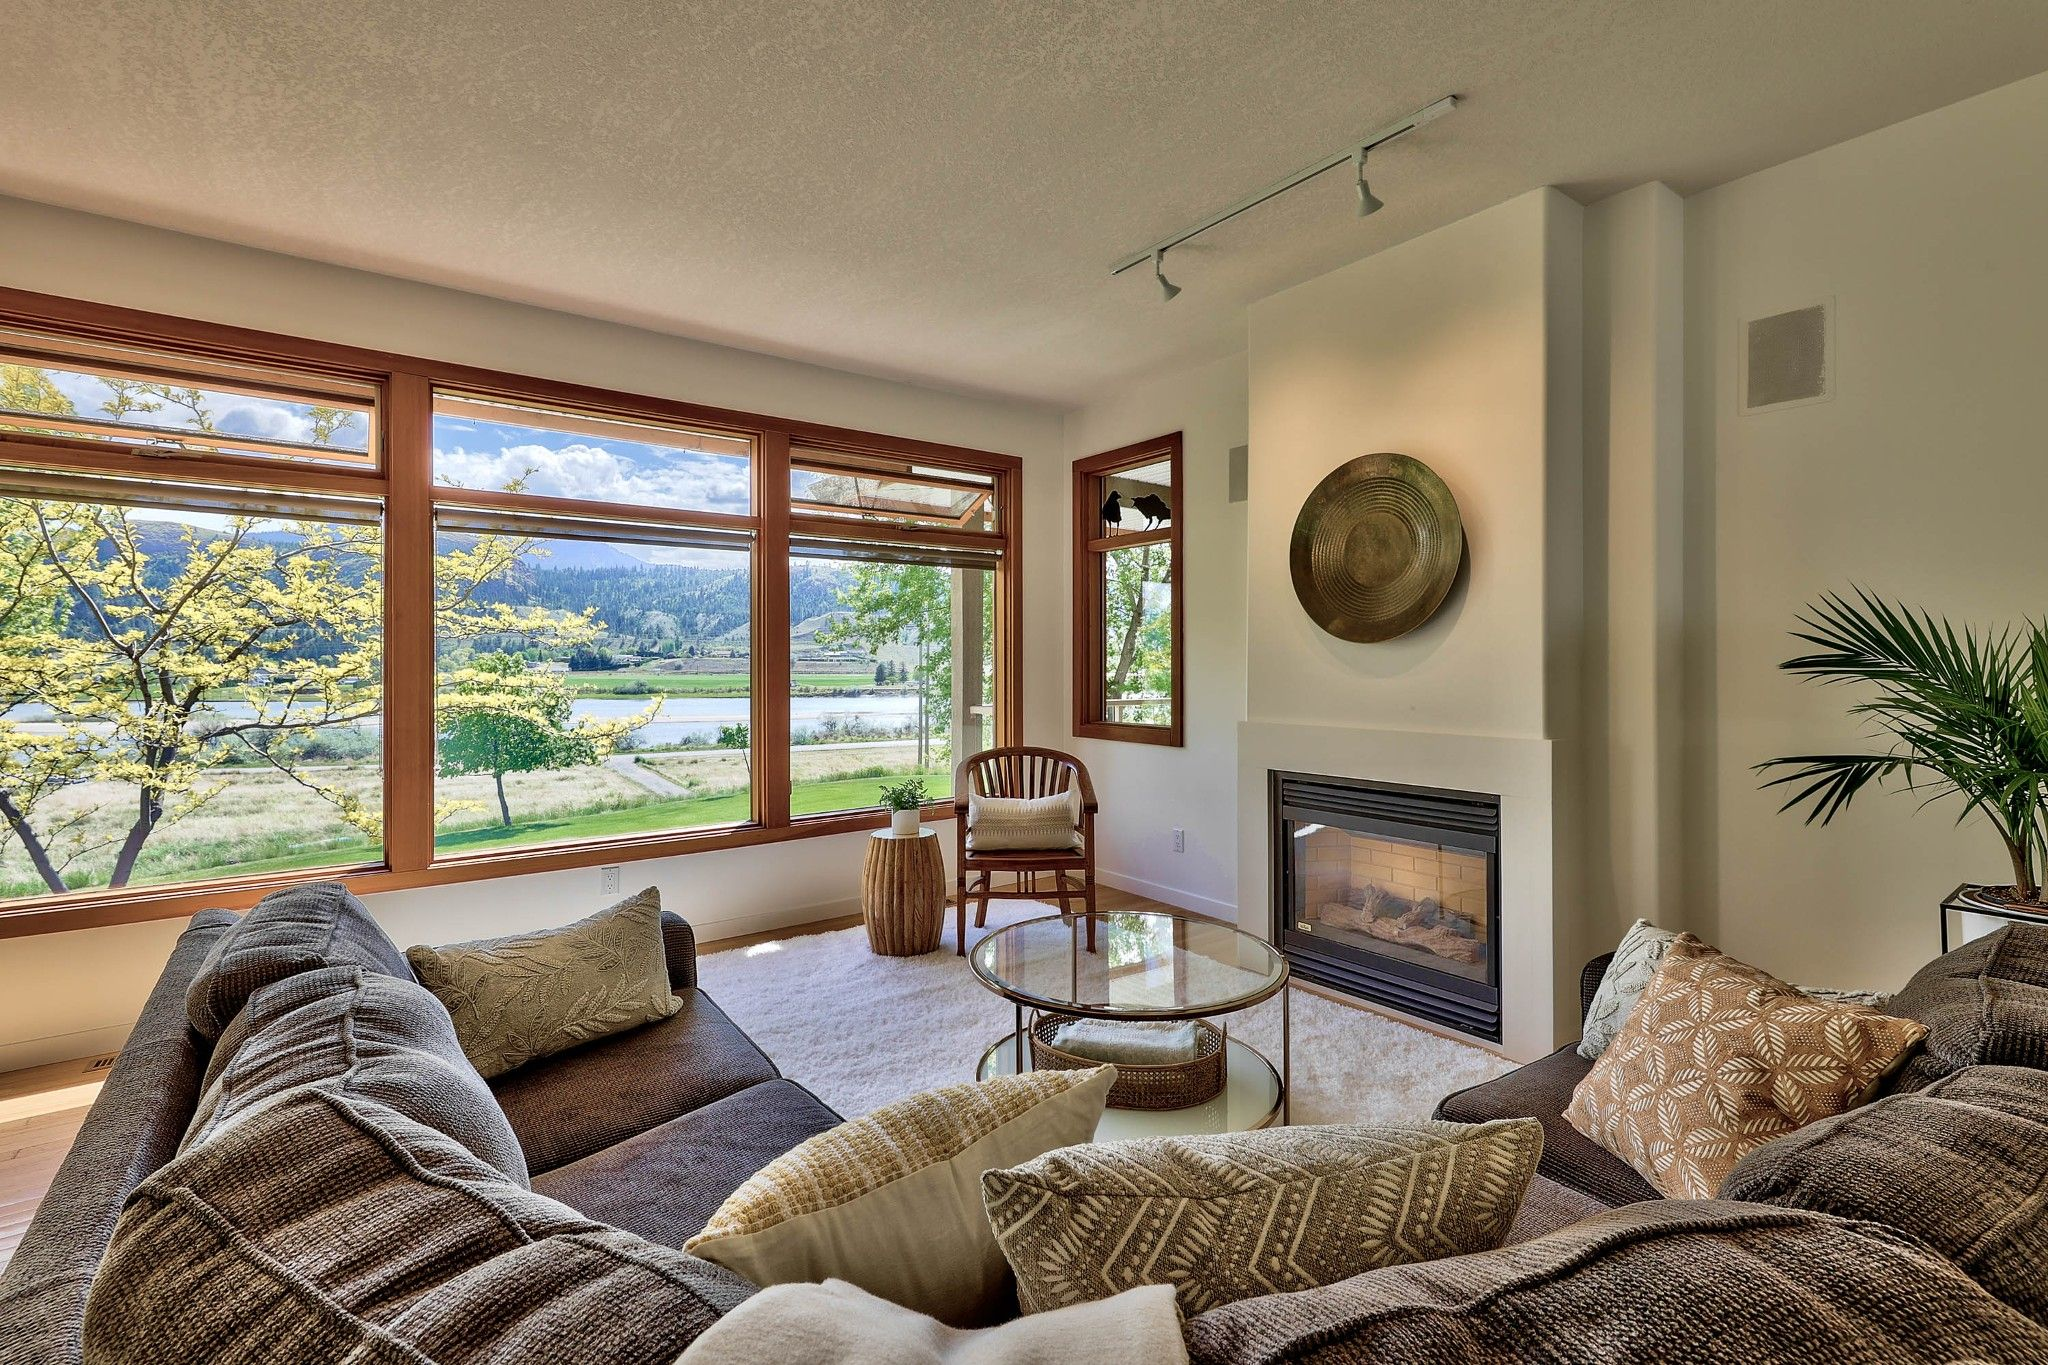 Photo 12: Photos: 3299 E Shuswap Road in Kamloops: South Thompson Valley House for sale : MLS®# 162162